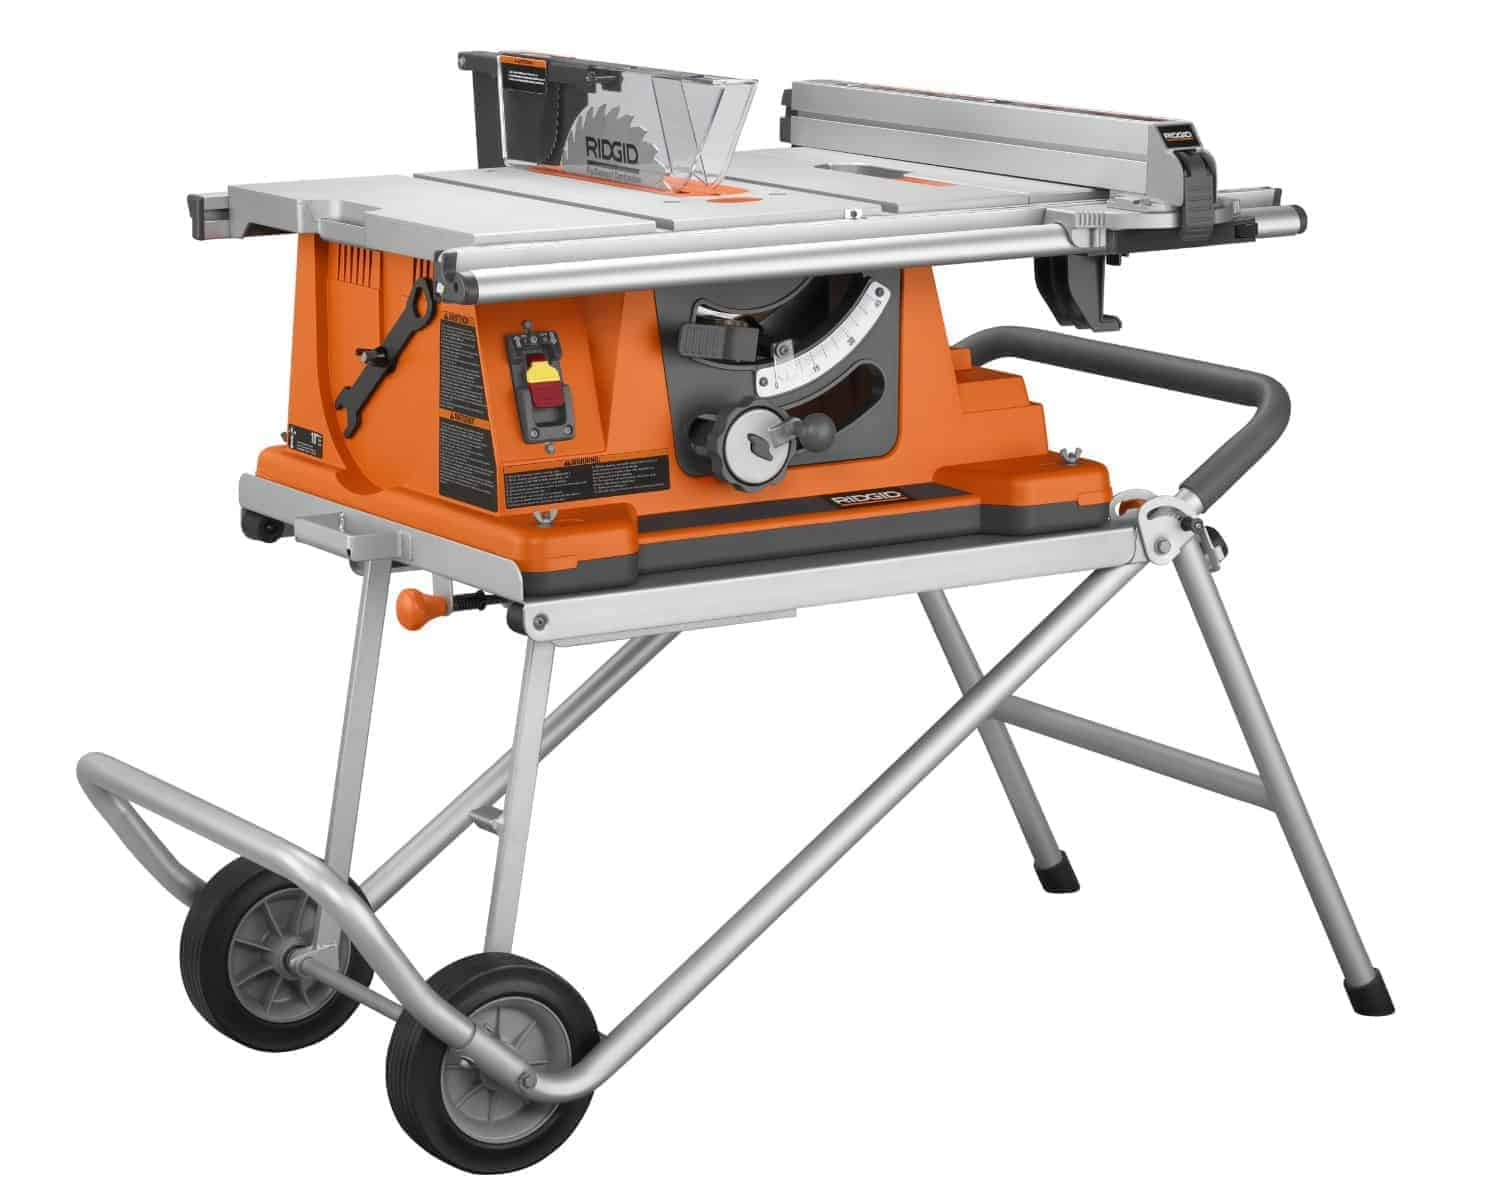 Ridgid r4510 heavy duty table saw review us80 Portable table saw reviews